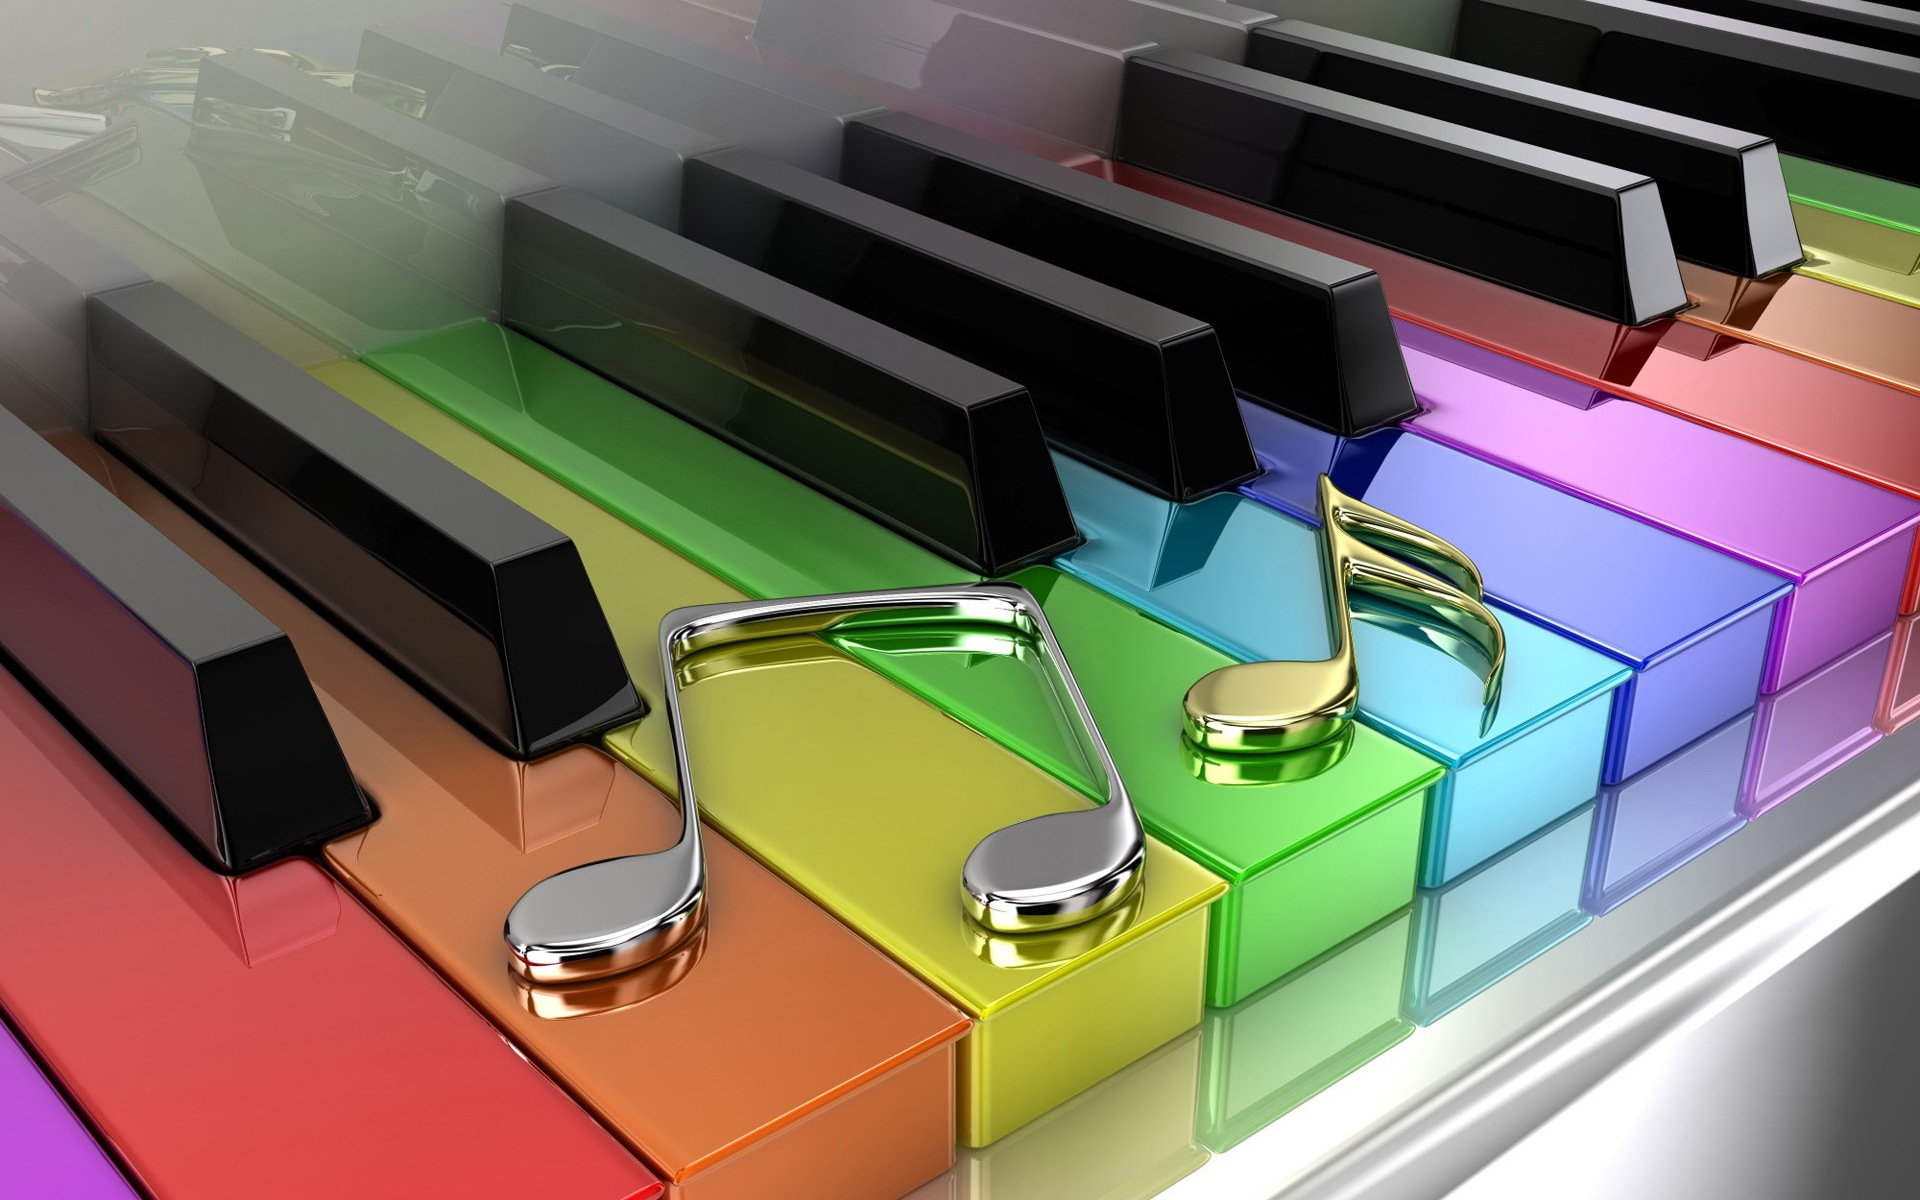 Piano hd wallpaper background image 1920x1200 id 415259 wallpaper abyss - 3d wallpaper for note 8 ...